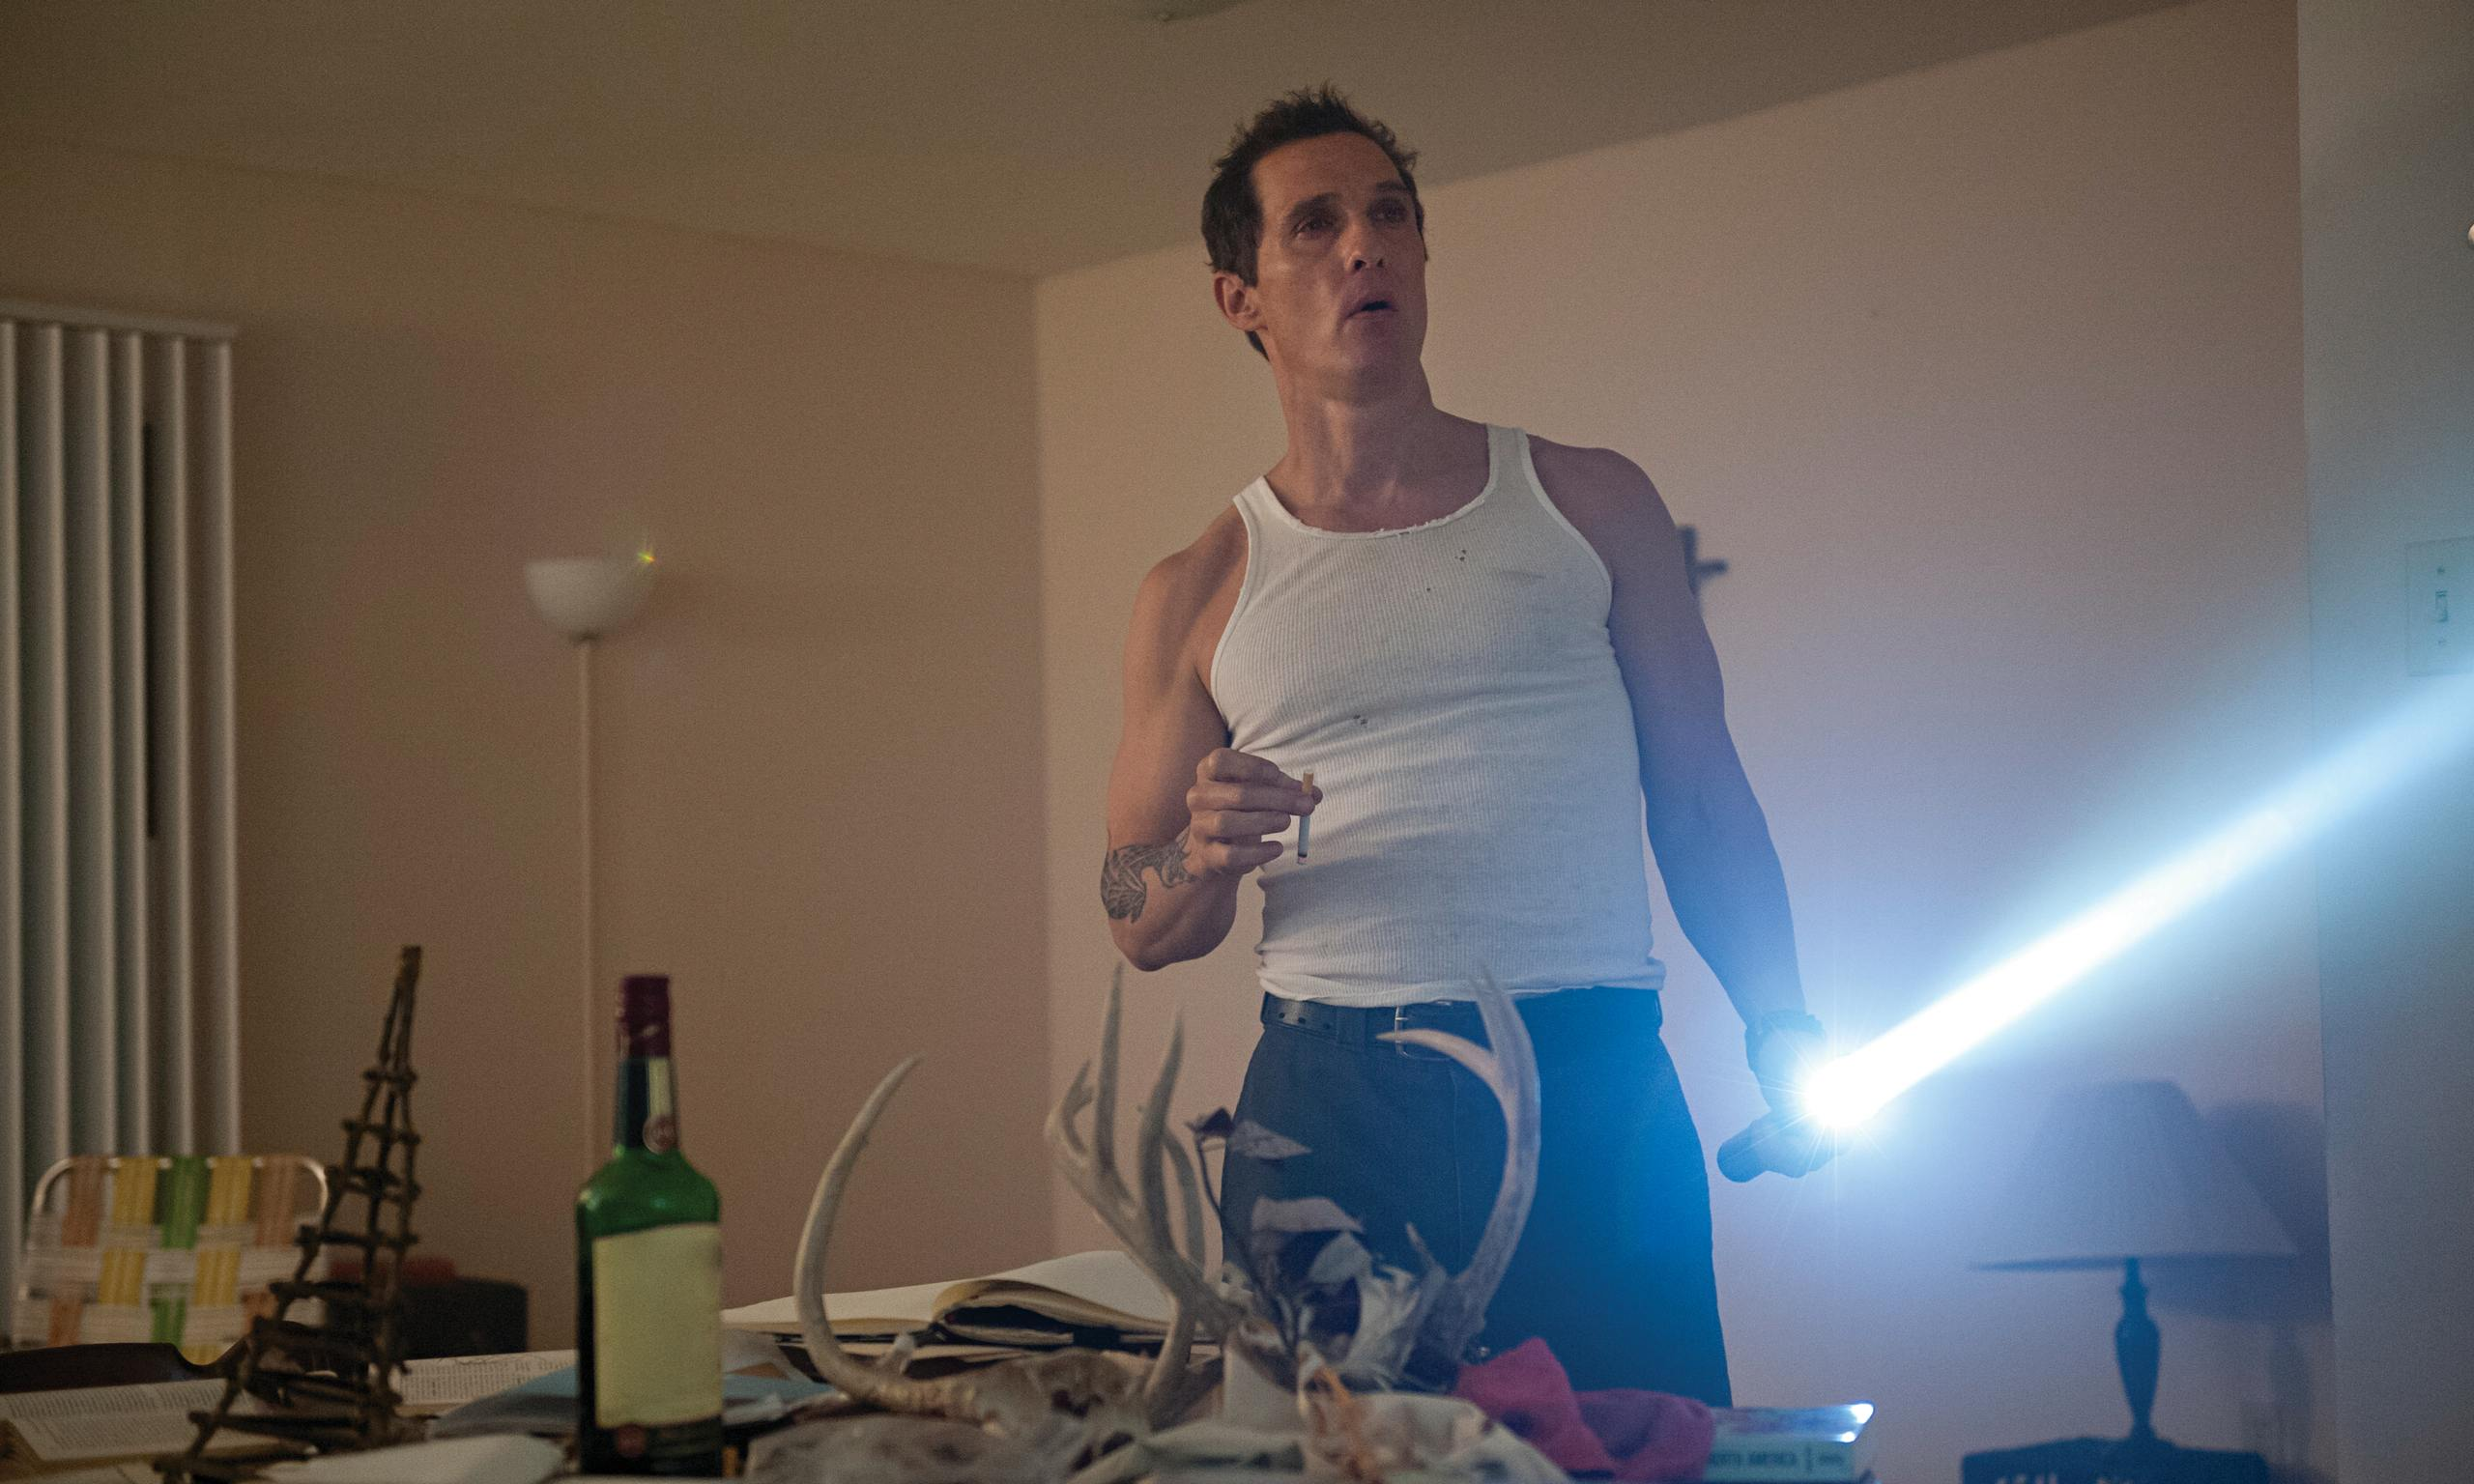 Rust Cohle … taking his work home again.